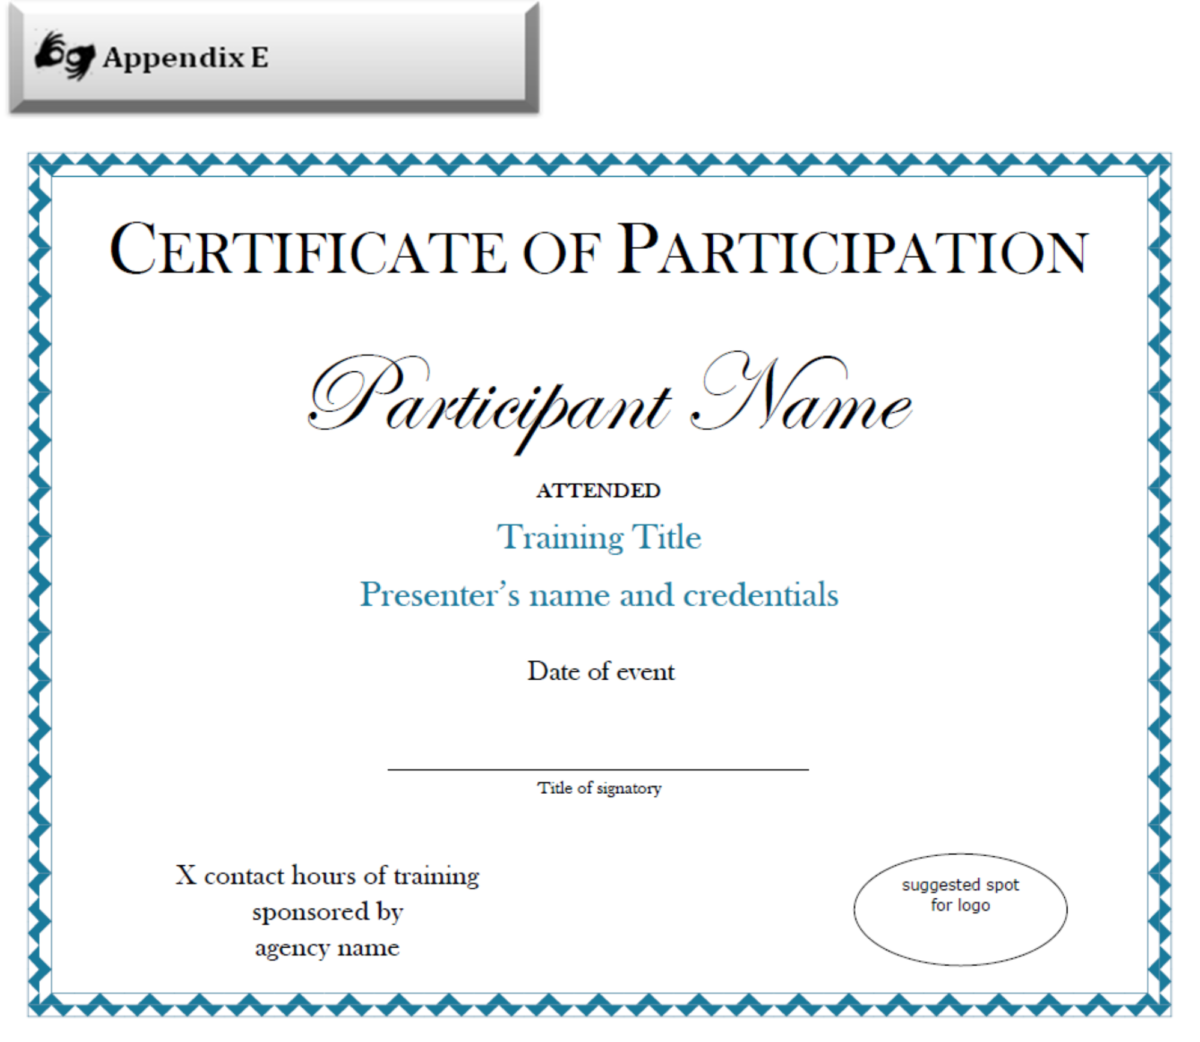 Certificate Of Participation Sample Free Download In Certificate Of Part Certificate Of Participation Template Certificate Templates Free Certificate Templates